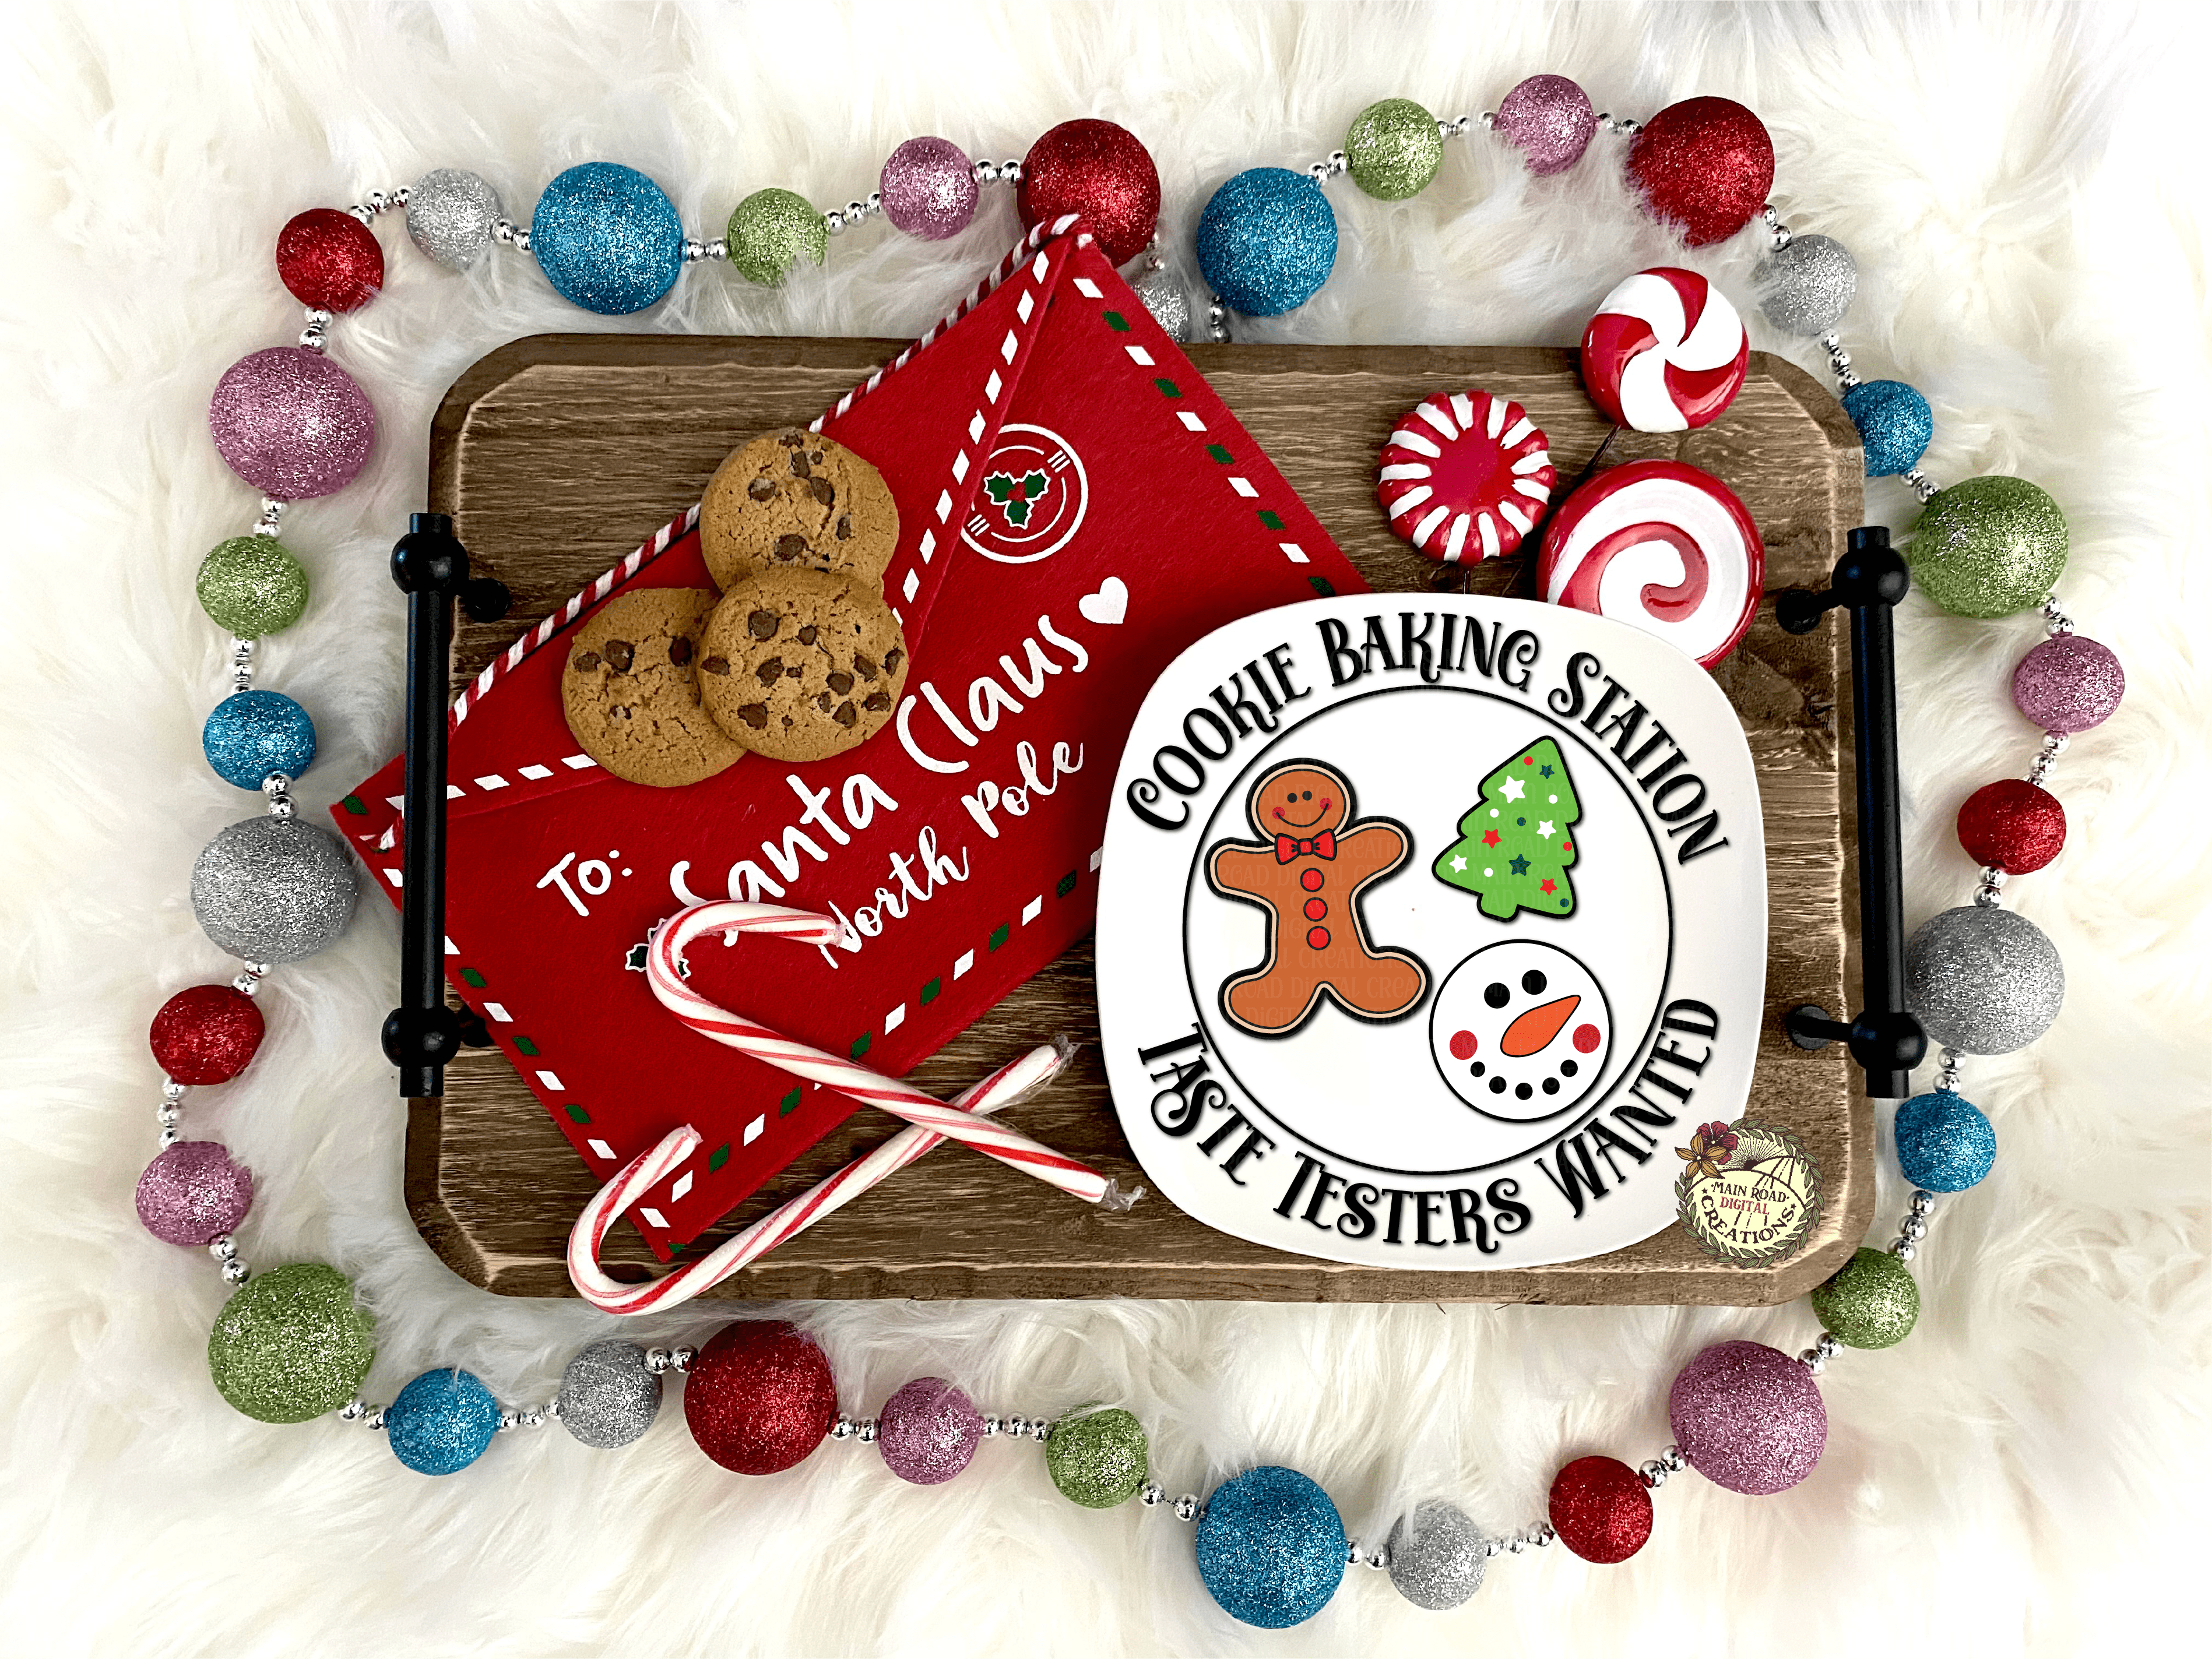 free christmas cookie svg, cookie baking station svg free, free holiday cut files, gingerbread cookie svg free, christmas tree clipart, snowman svg free